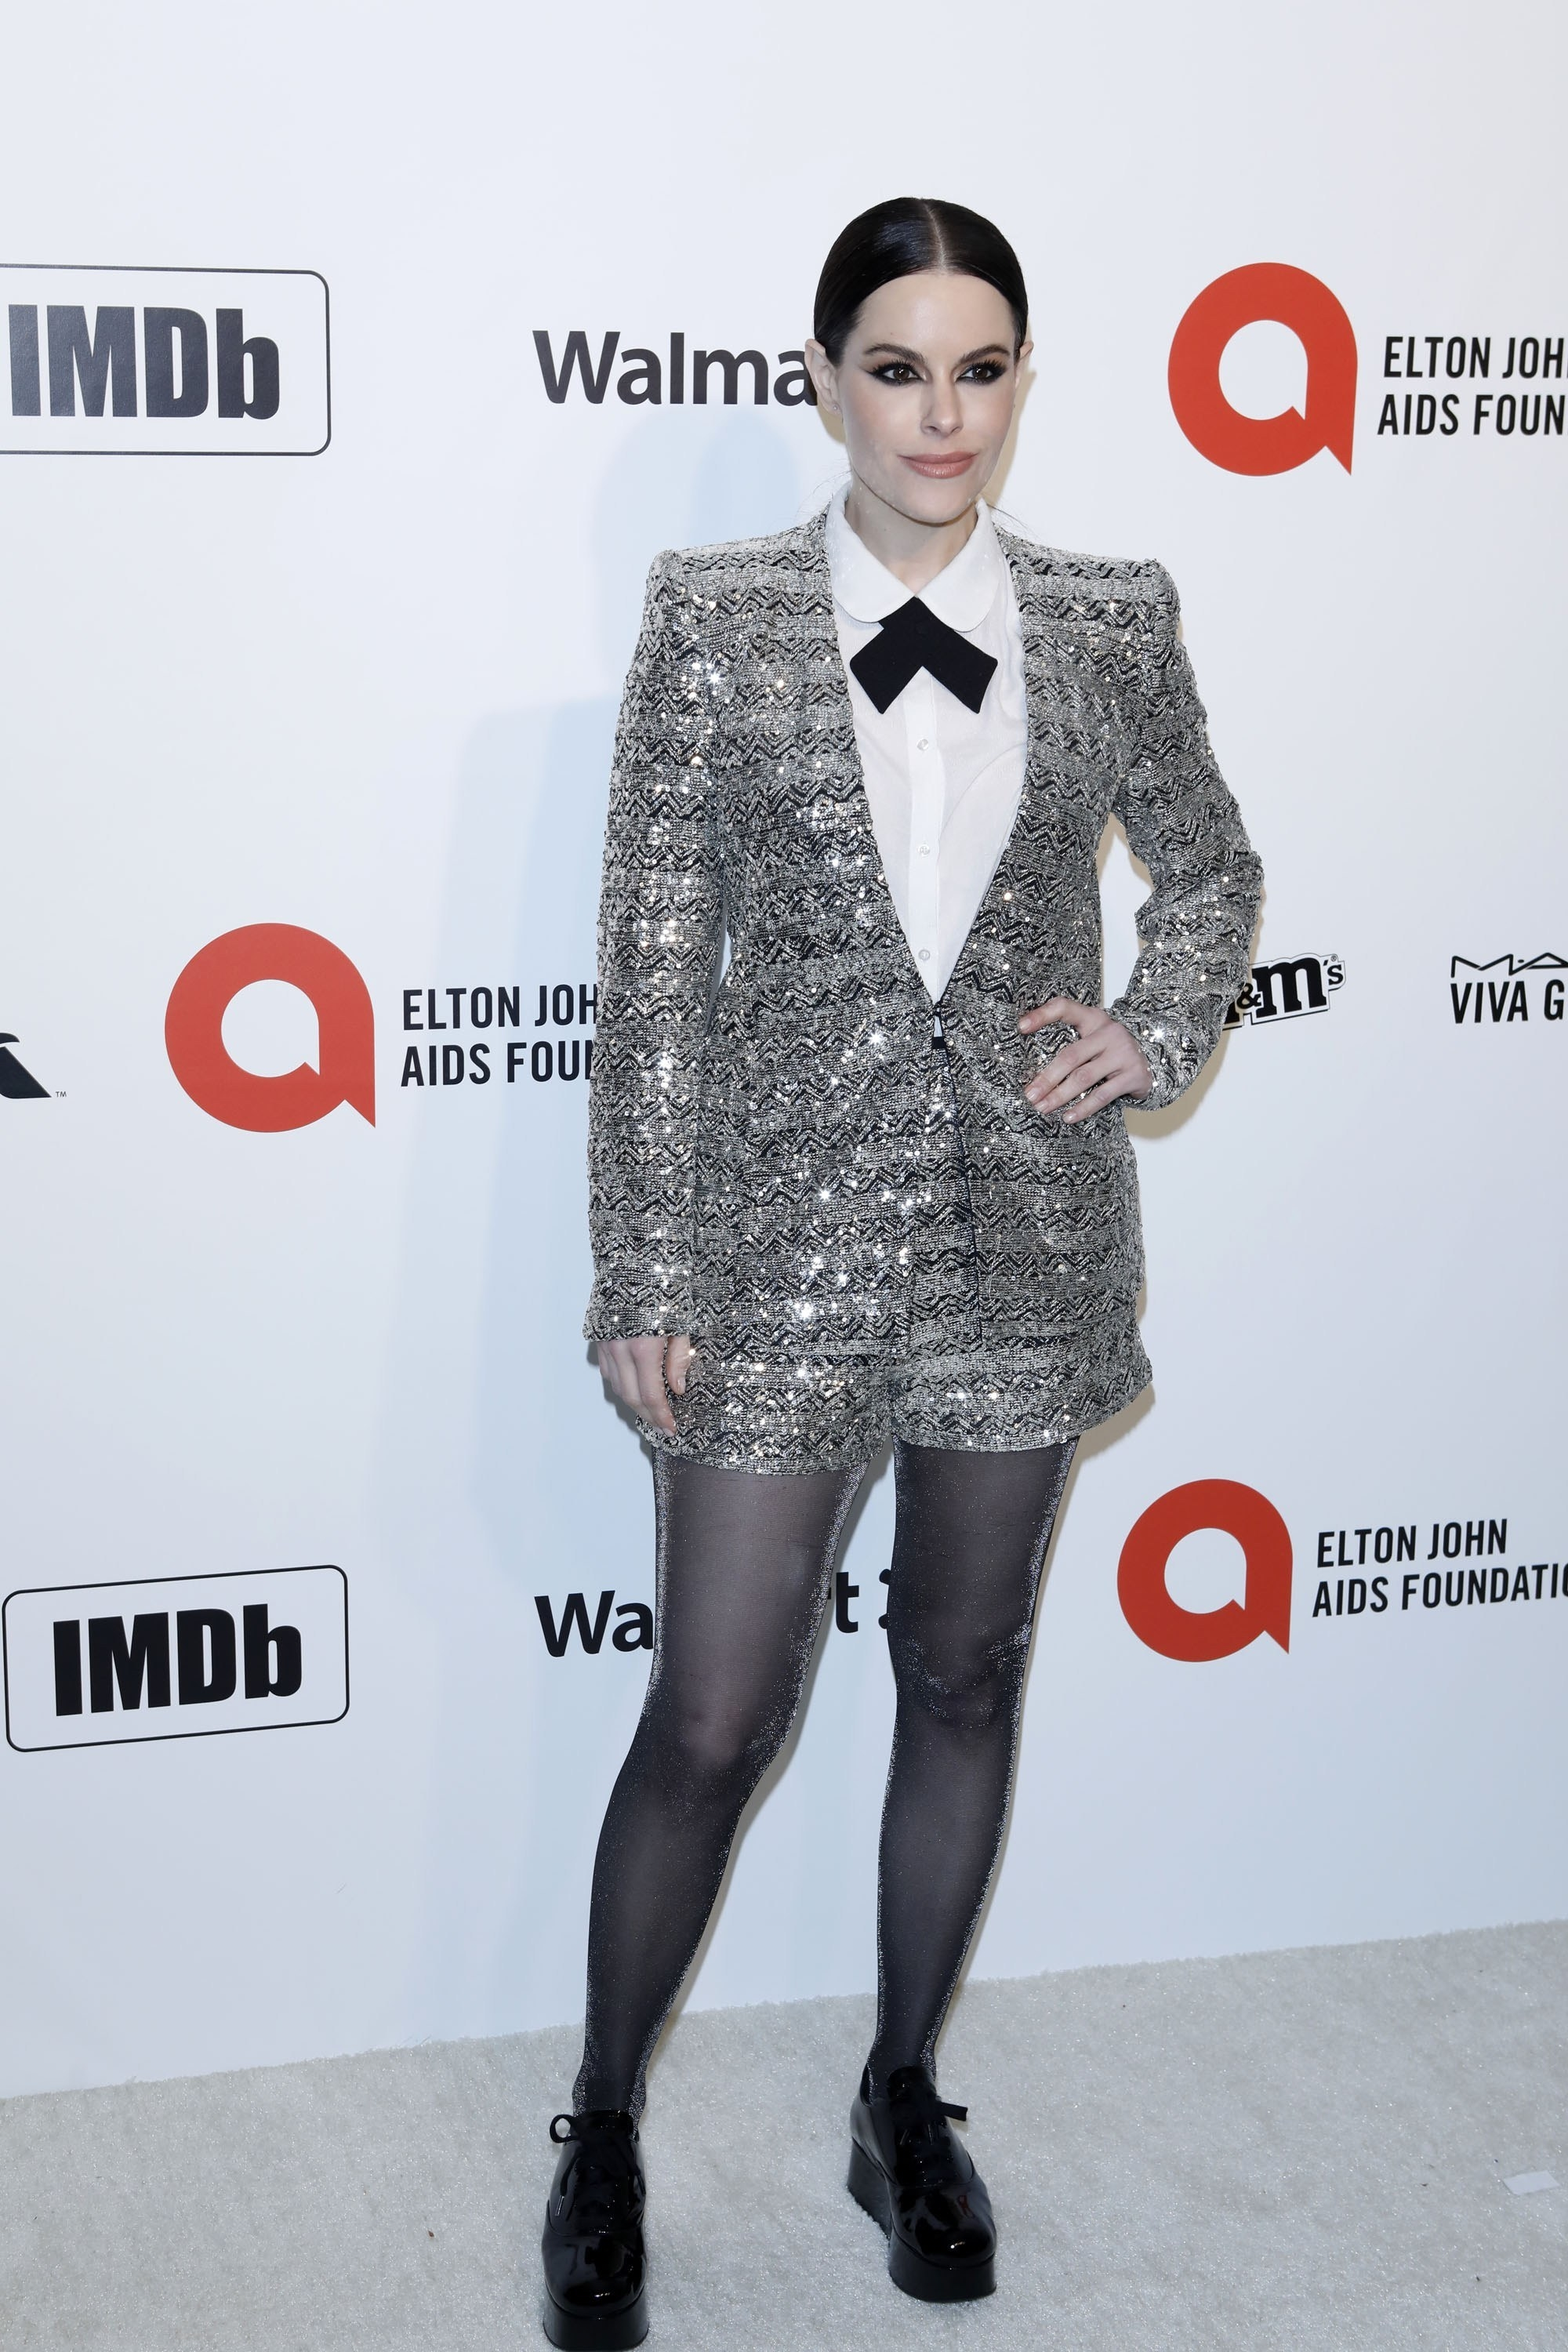 Emily Hampshire wears a tuxedo dress at a red carpet event